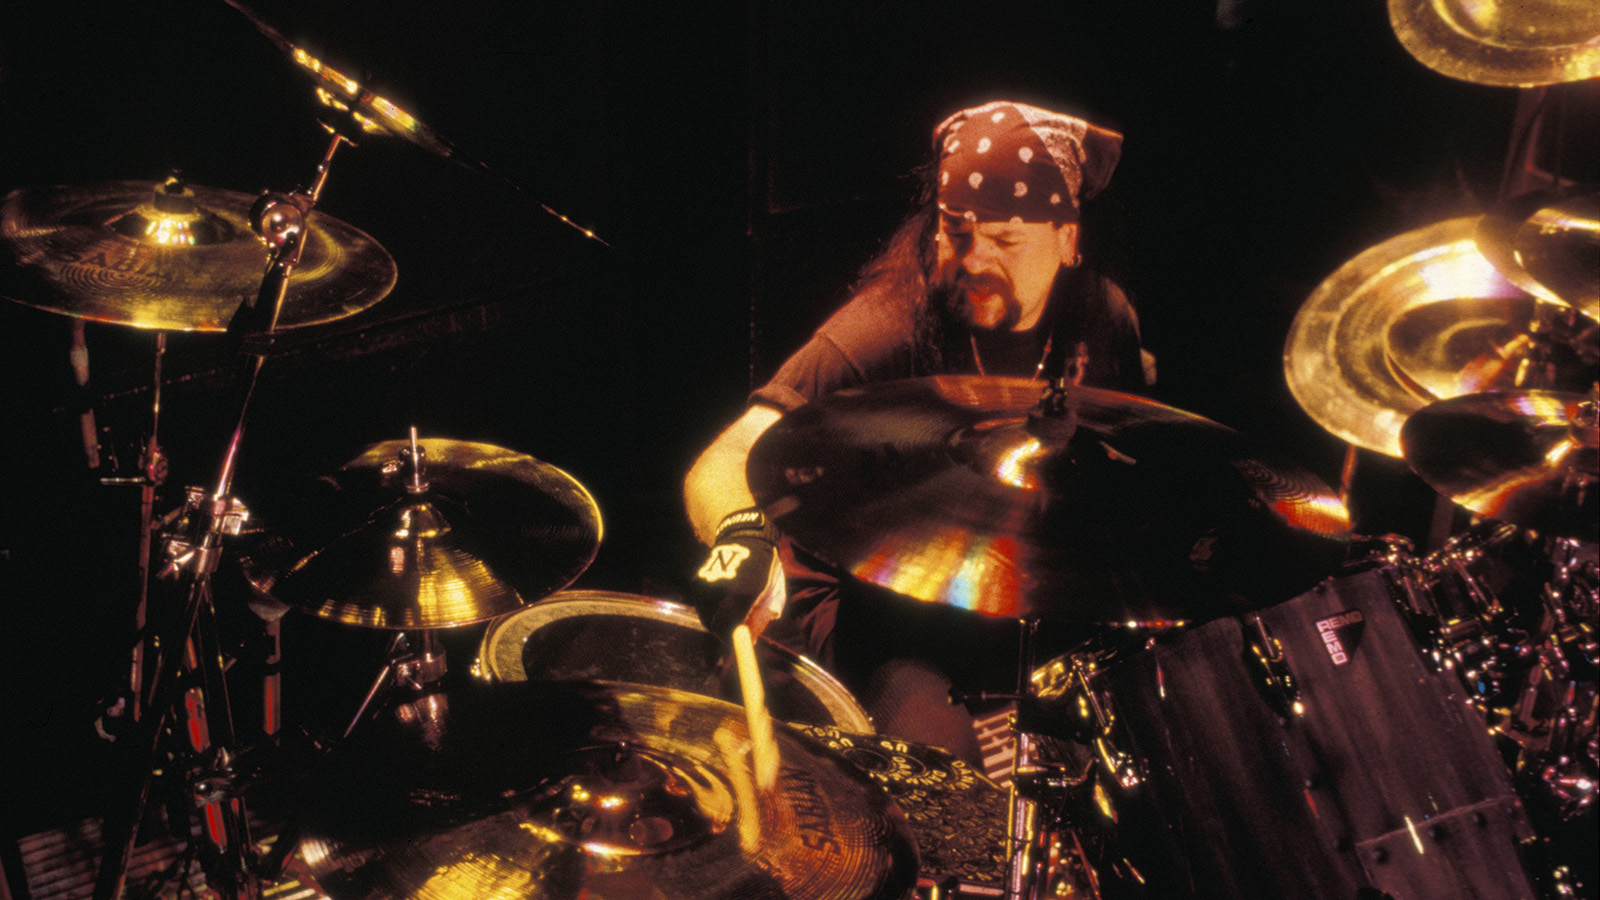 Pantera Drummer Vinnie Paul's Memorial Marker Placed at Texas Grave Site